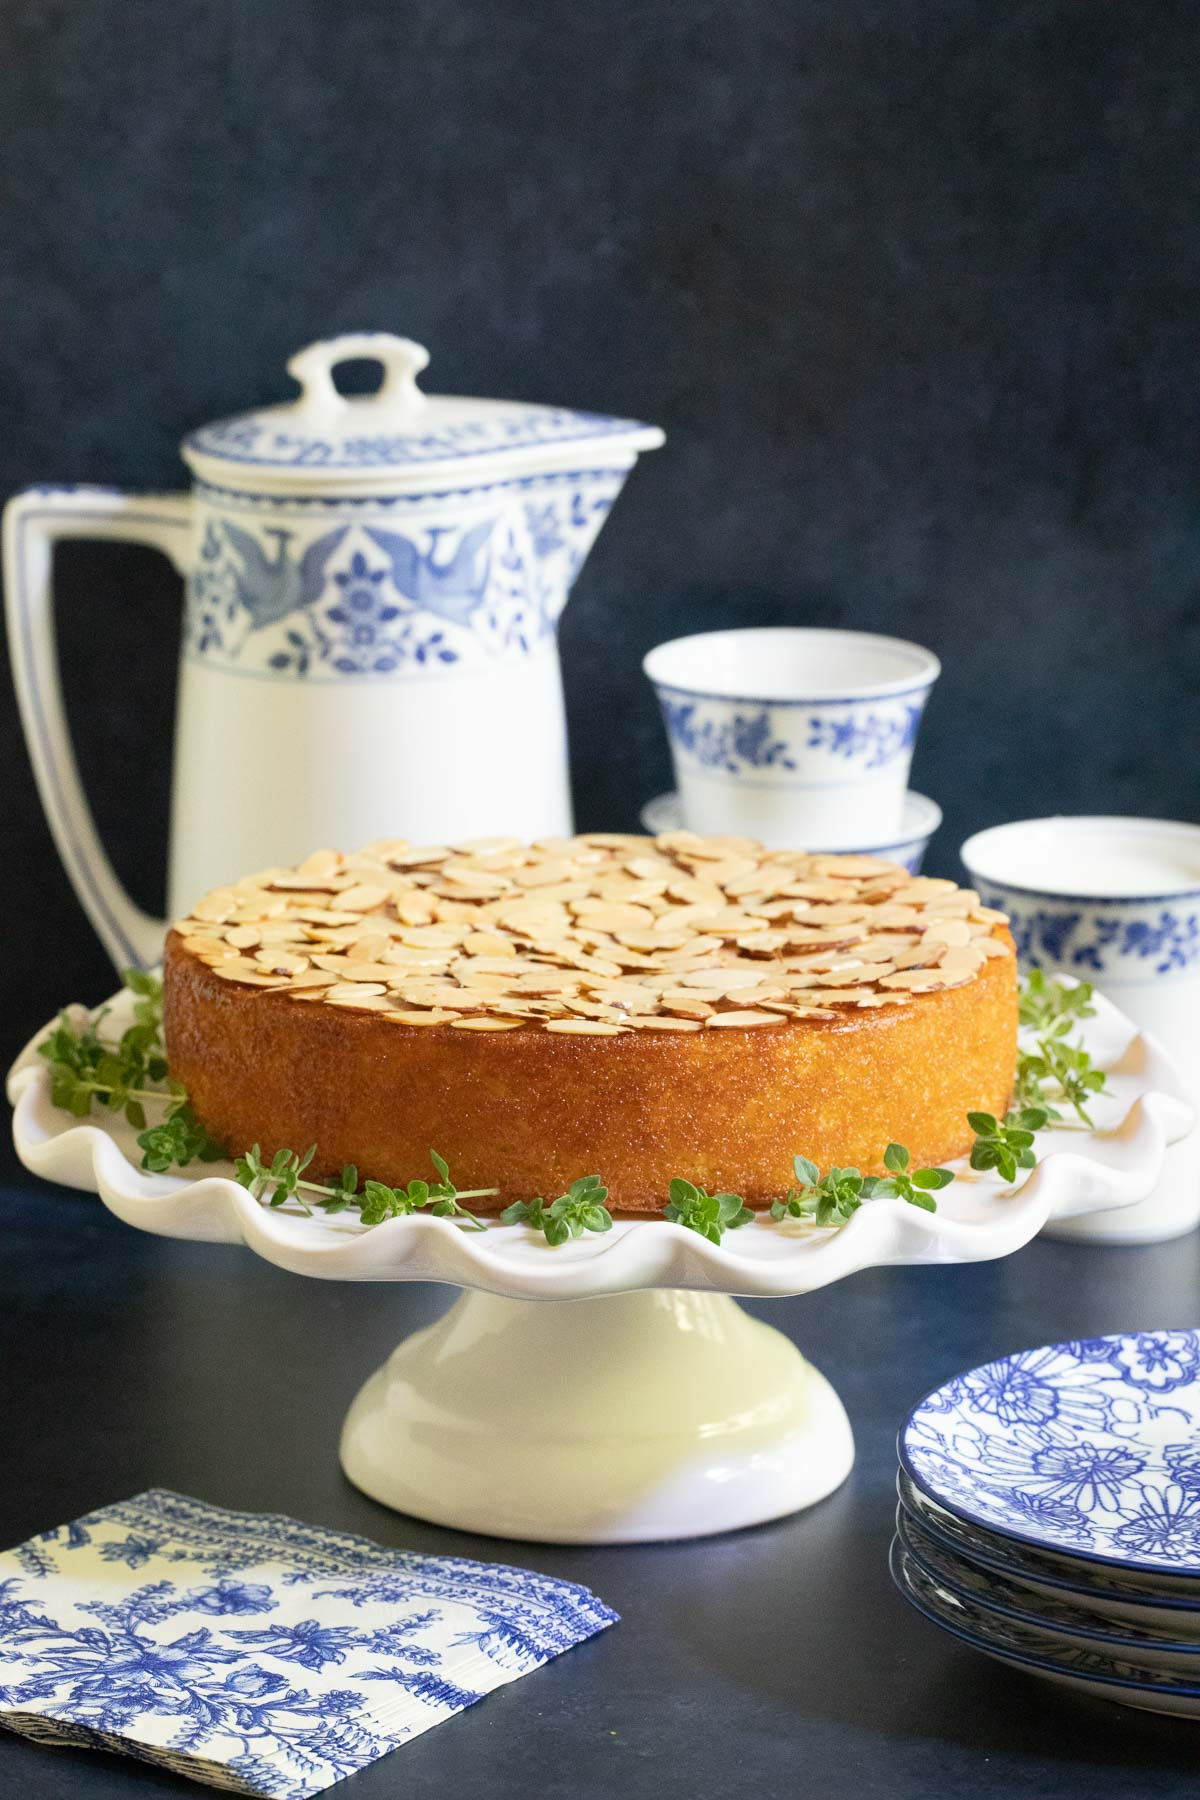 Vertical photo of a Ridiculously Easy Almond Coconut Cake on a white pedestal cake stand with a blue and white milk pitcher and cups in the background.